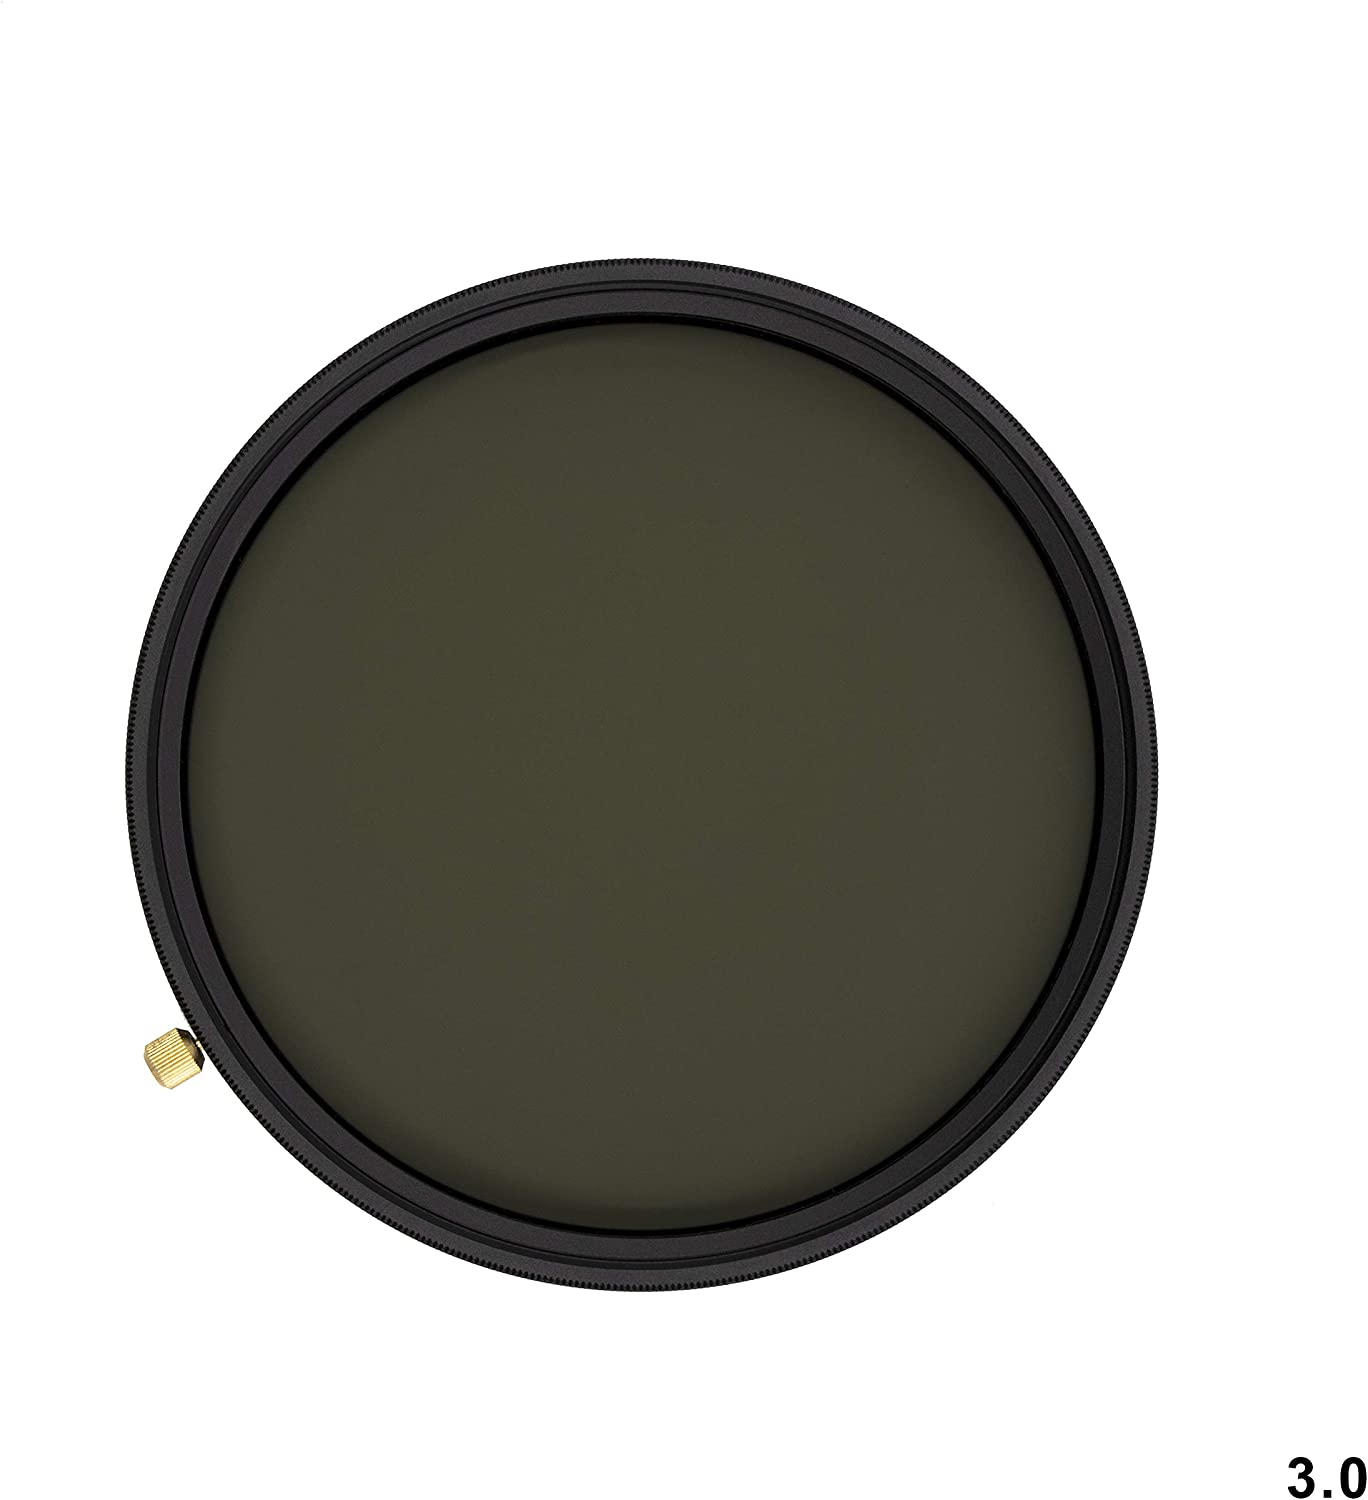 HGX Prime Neutral Density Filter Promaster 72mm Variable ND 1.3-8 Stops